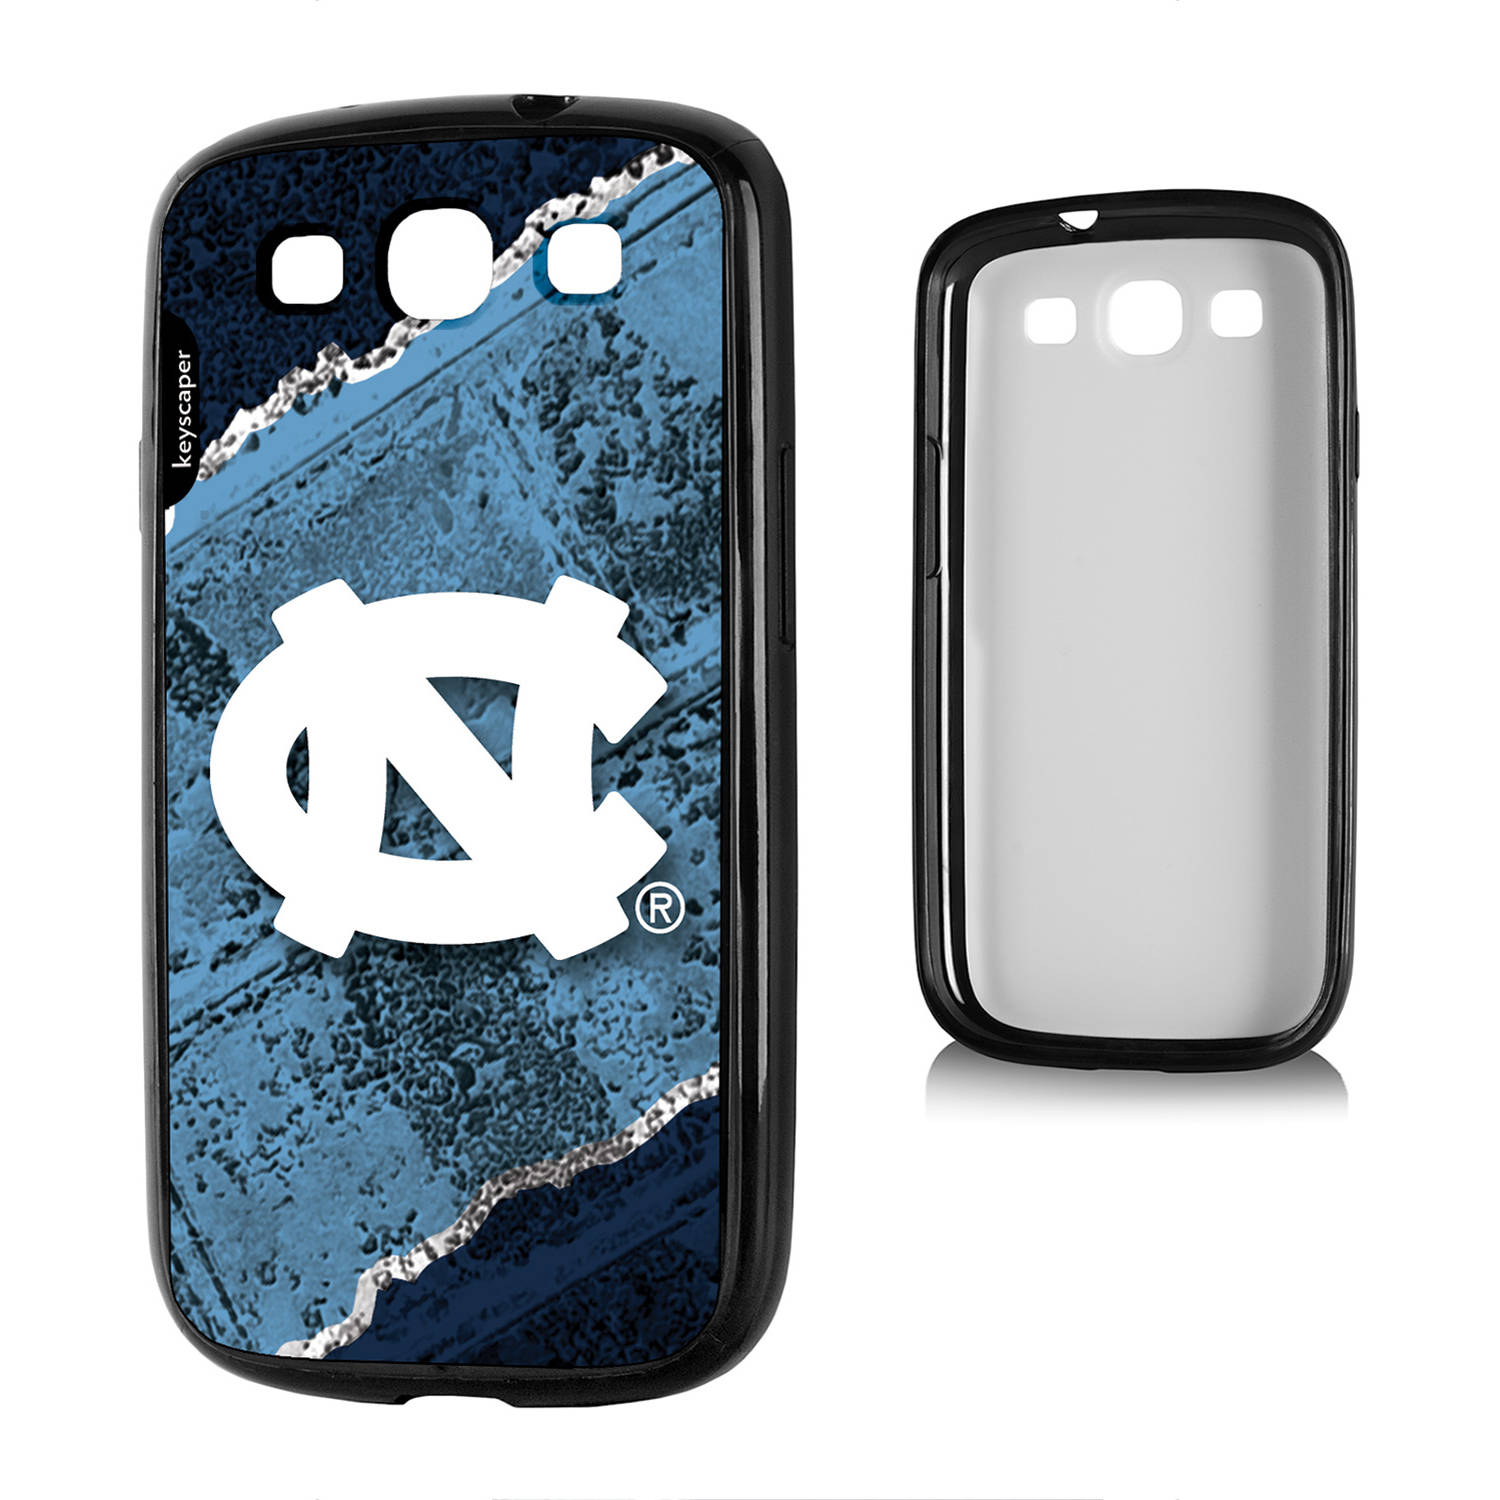 North Carolina Tar Heels Galaxy S3 Bumper Case